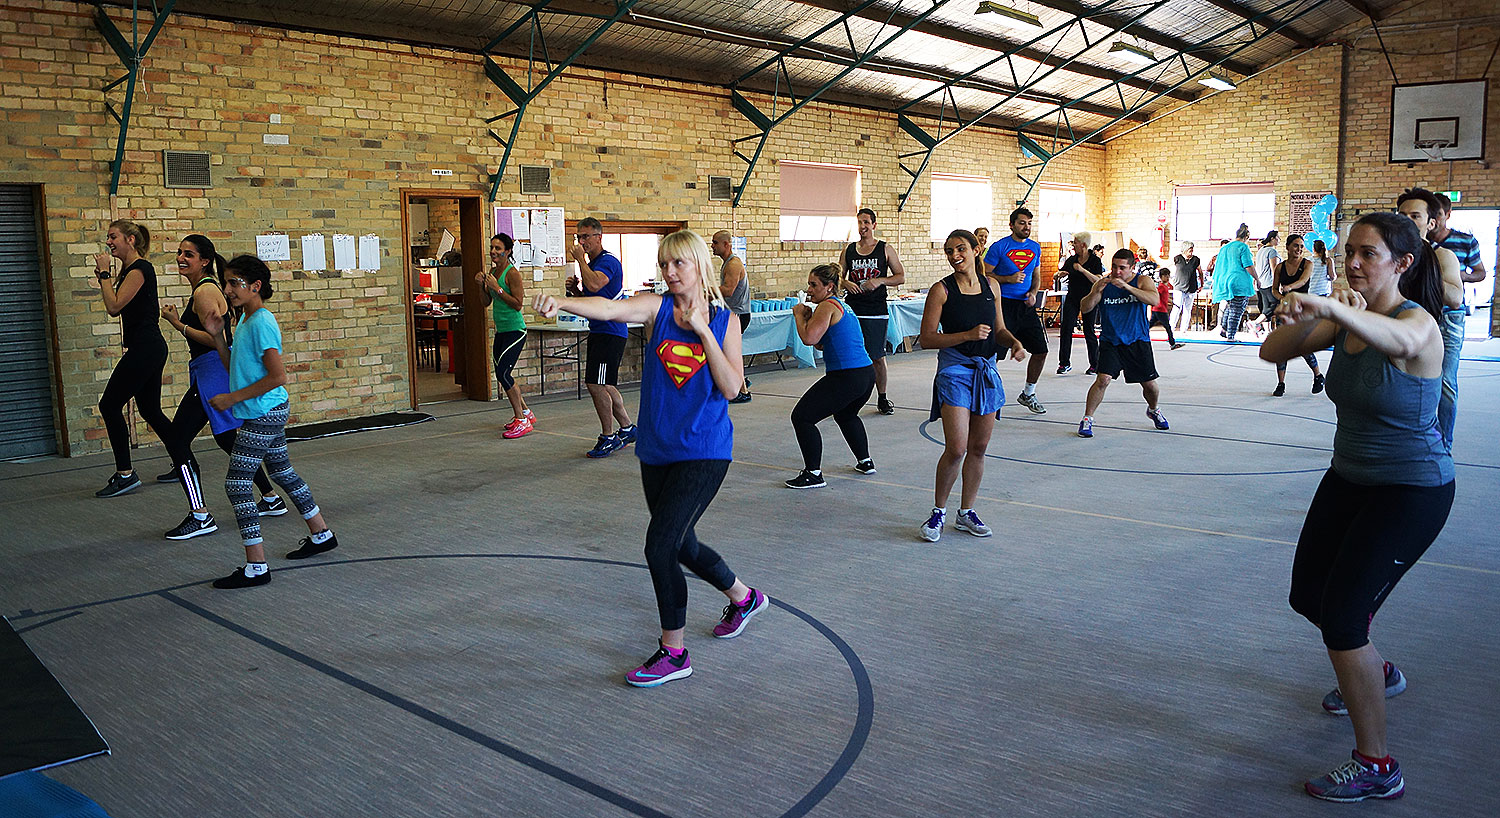 A community fitness event in a hall with women and men including kids working out together and getting active